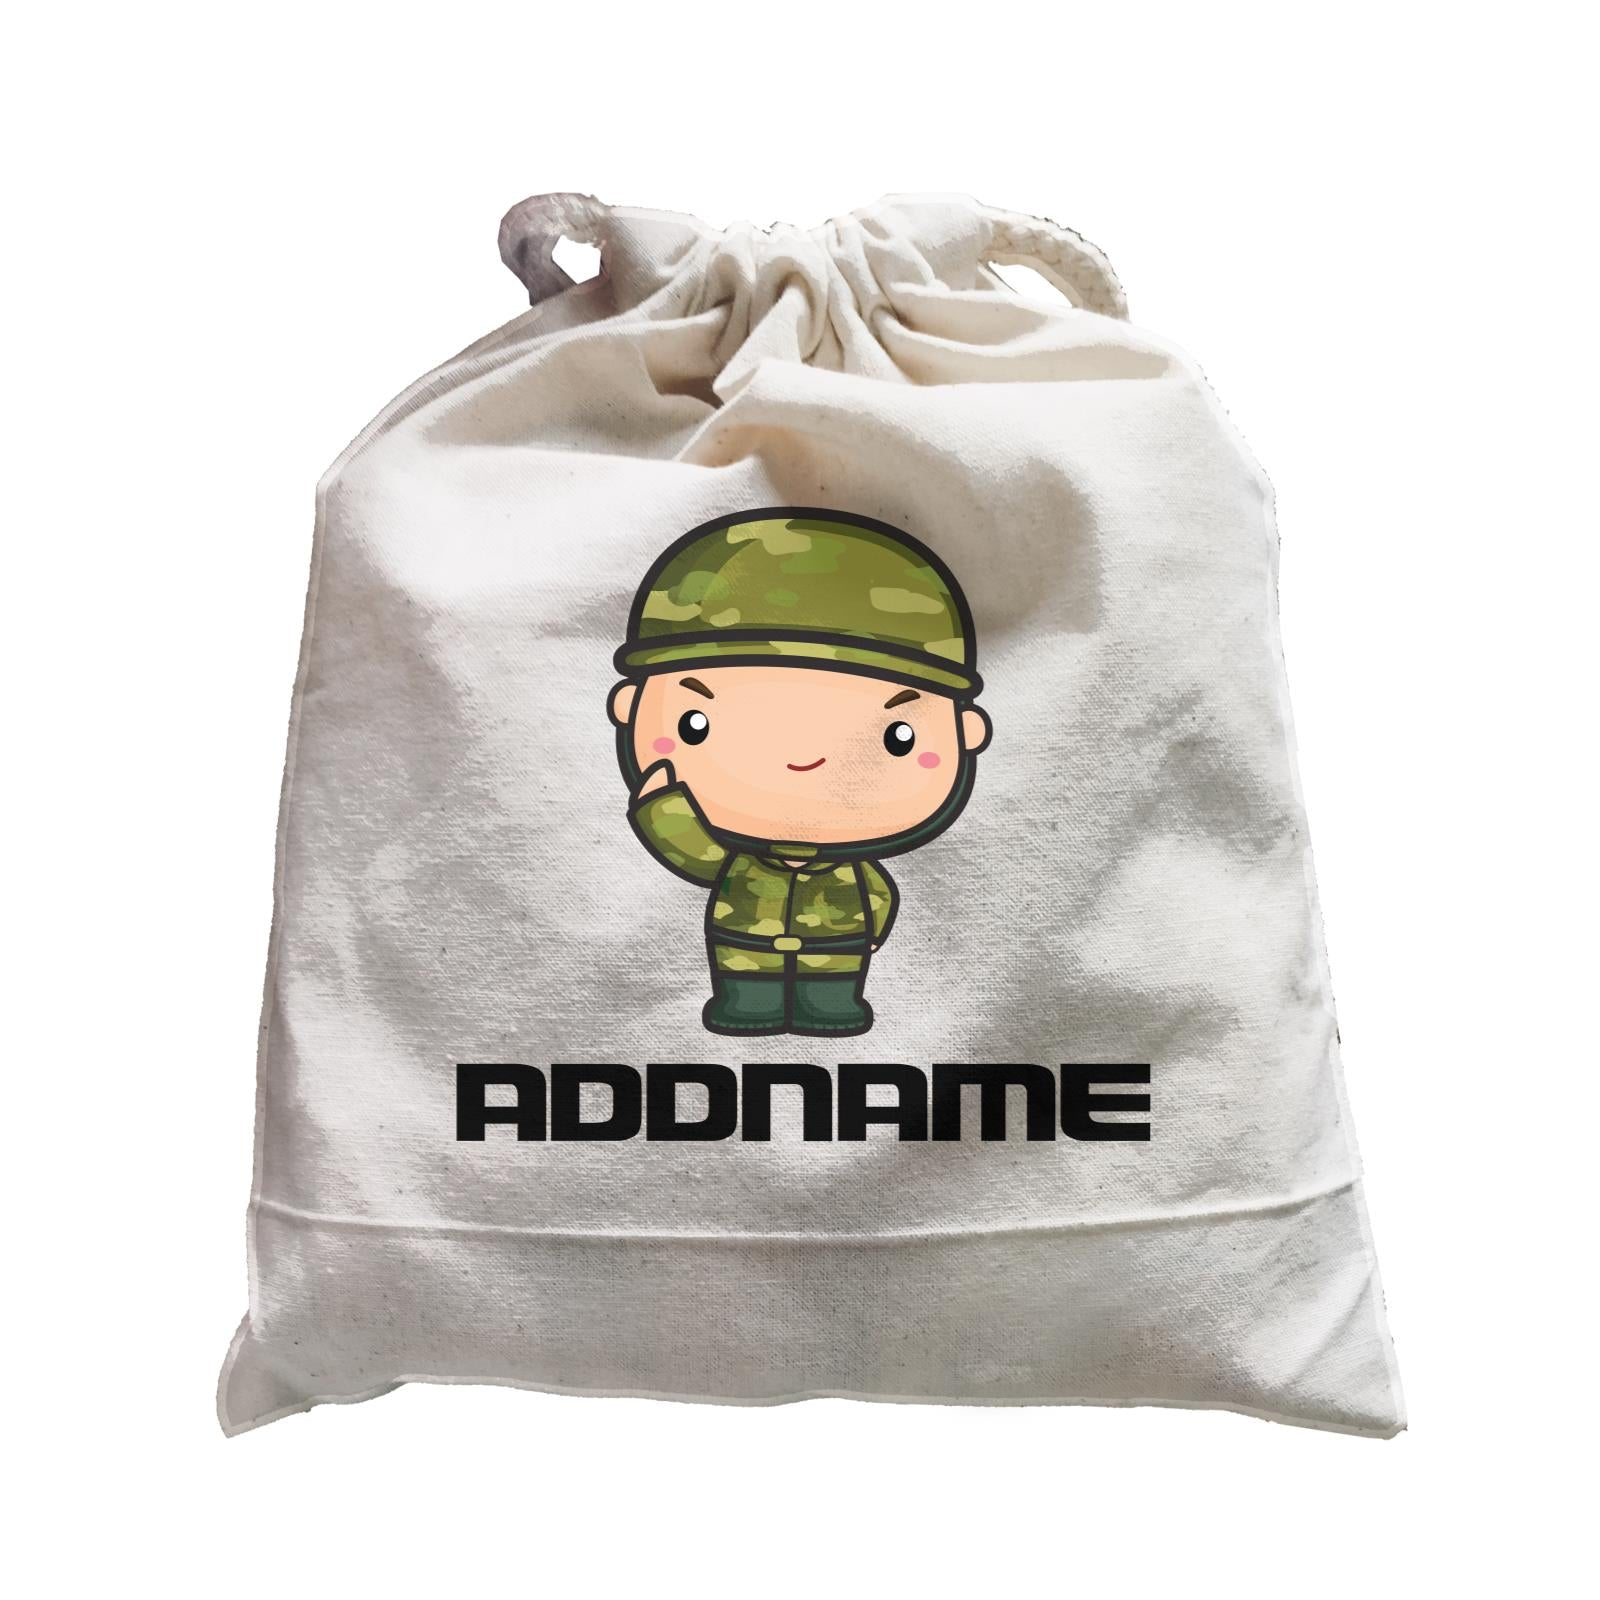 Birthday Battle Theme Army Soldier Boy Addname Satchel